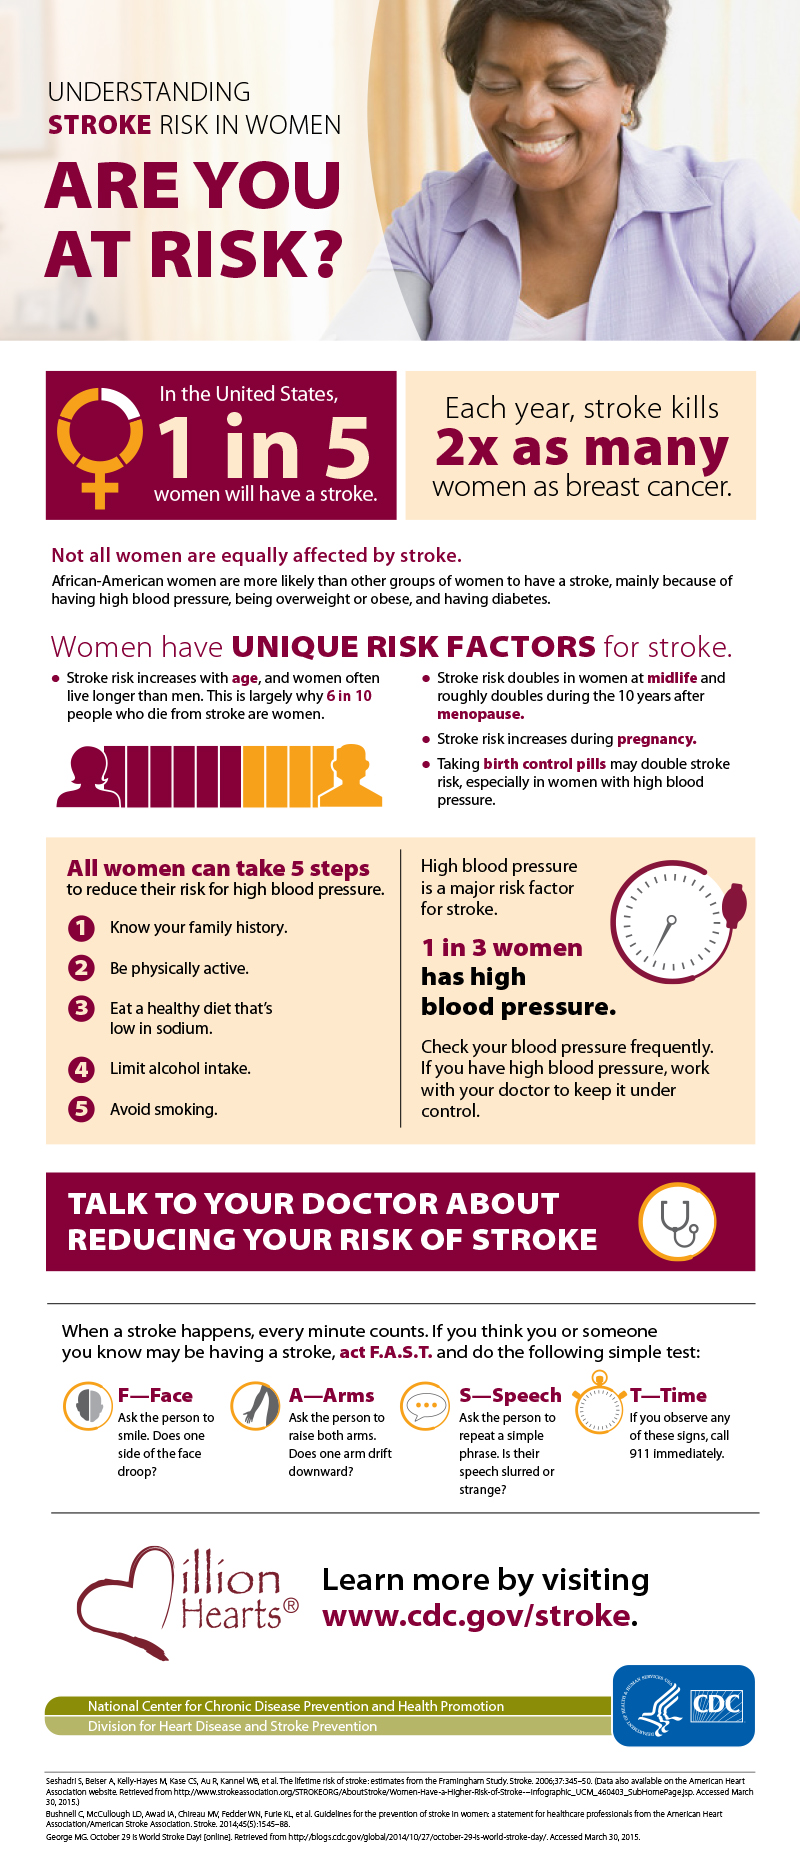 Understanding Stroke Risk in Women: Are You at Risk? In the United States, 1 in 5 women will have a stroke. Each year, stroke kills 2x as many women as breast cancer. Not all women are equally affected by stroke. African-American women are more likely than other groups of women to have a stroke, mainly because of having high blood pressure, being overweight or obese, and having diabetes. Women have UNIQUE RISK FACTORS for stroke. Stroke risk increases with age, and women often live longer than men. This is largely why 6 in 10 people who die from stroke are women. Stroke risk doubles in women at midlife and roughly doubles during the 10 years after menopause. Stroke risk increases during pregnancy. Taking birth control pills may double stroke risk, especially in women with high blood pressure. All women can take 5 steps to reduce their risk for high blood pressure. 1.	Know your family history. 2. Be physically active. 3. Eat a healthy diet that's low in sodium. 4. Limit alcohol intake. 5. Avoid smoking. High blood pressure is a major risk factor for stroke. 1 in 3 women has high blood pressure. Check your blood pressure frequently. If you have high blood pressure, work with your doctor to keep it under control. Talk to your doctor about reducing your risk of stroke. When a stroke happens, every minute counts. If you think you or someone you know may be having a stroke, act F.A.S.T. and do the following simple test: F—Face: Ask the person to smile. Does one side of the face droop? A—Arms: Ask the person to raise both arms. Does one arm drift downward? S—Speech: Ask the person to repeat a simple phrase. Is their speech slurred or strange? T—Time: If you observe any of these signs, call 911 immediately. Learn more by visiting www.cdc.gov/stroke. National Center for Chronic Disease Prevention and Health Promotion; Division for Heart Disease and Stroke Prevention. U.S. Department of Health and Human Services and the Centers for Disease Control and Prevention. Sources: Seshadri S, Beiser A, Kelly-Hayes M, Kase CS, Au R, Kannel WB, et al. The lifetime risk of stroke: estimates from the Framingham Study. Stroke. 2006;37:345–50. (Data also available on the American Heart Association website. Retrieved from http://www.strokeassociation.org/STROKEORG/AboutStroke/Women-Have-a-Higher-Risk-of-Stroke---Infographic_UCM_460403_SubHomePage.jsp. Accessed March 30, 2015.) Bushnell C, McCullough LD, Awad IA, Chireau MV, Fedder WN, Furie KL, et al. Guidelines for the prevention of stroke in women: a statement for healthcare professionals from the American Heart Association/American Stroke Association. Stroke. 2014;45(5):1545–88. George MG. October 29 is World Stroke Day! [online]. Retrieved from http://blogs.cdc.gov/global/2014/10/27/october-29-is-world-stroke-day/. Accessed March 30, 2015.